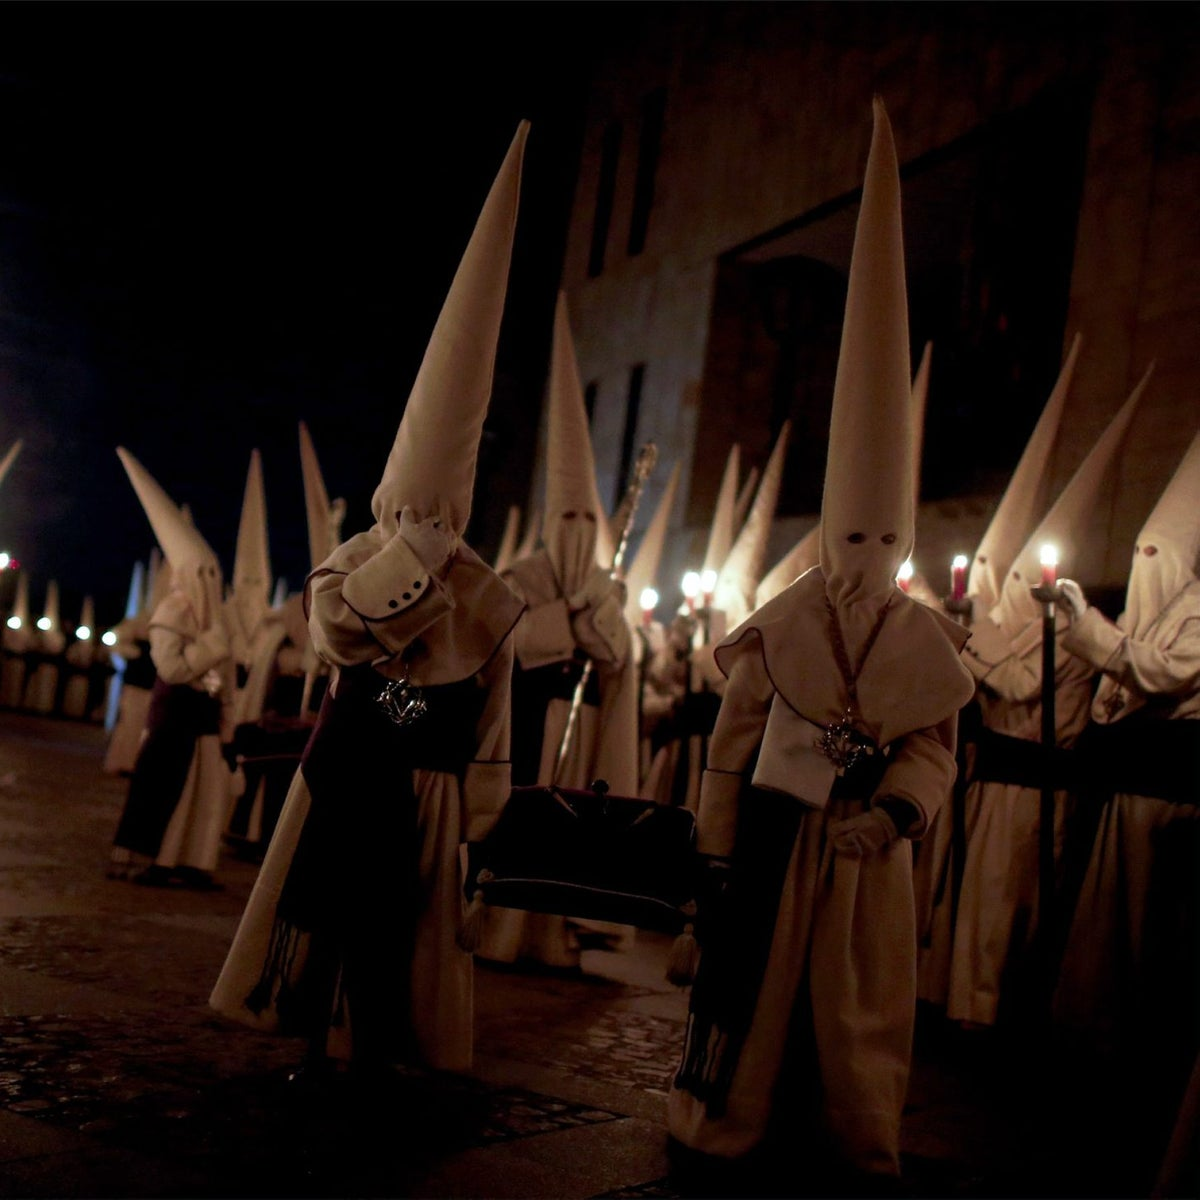 Hooded penitents from the Brotherhood of Jesus in a procession during Holy Week celebrations, Zamora, Spain, Thursday, March 24, 2016. Holy processions take place across Spain as Christians gather to celebrate the week leading up to Easter and the death and resurrection of Jesus Christ.